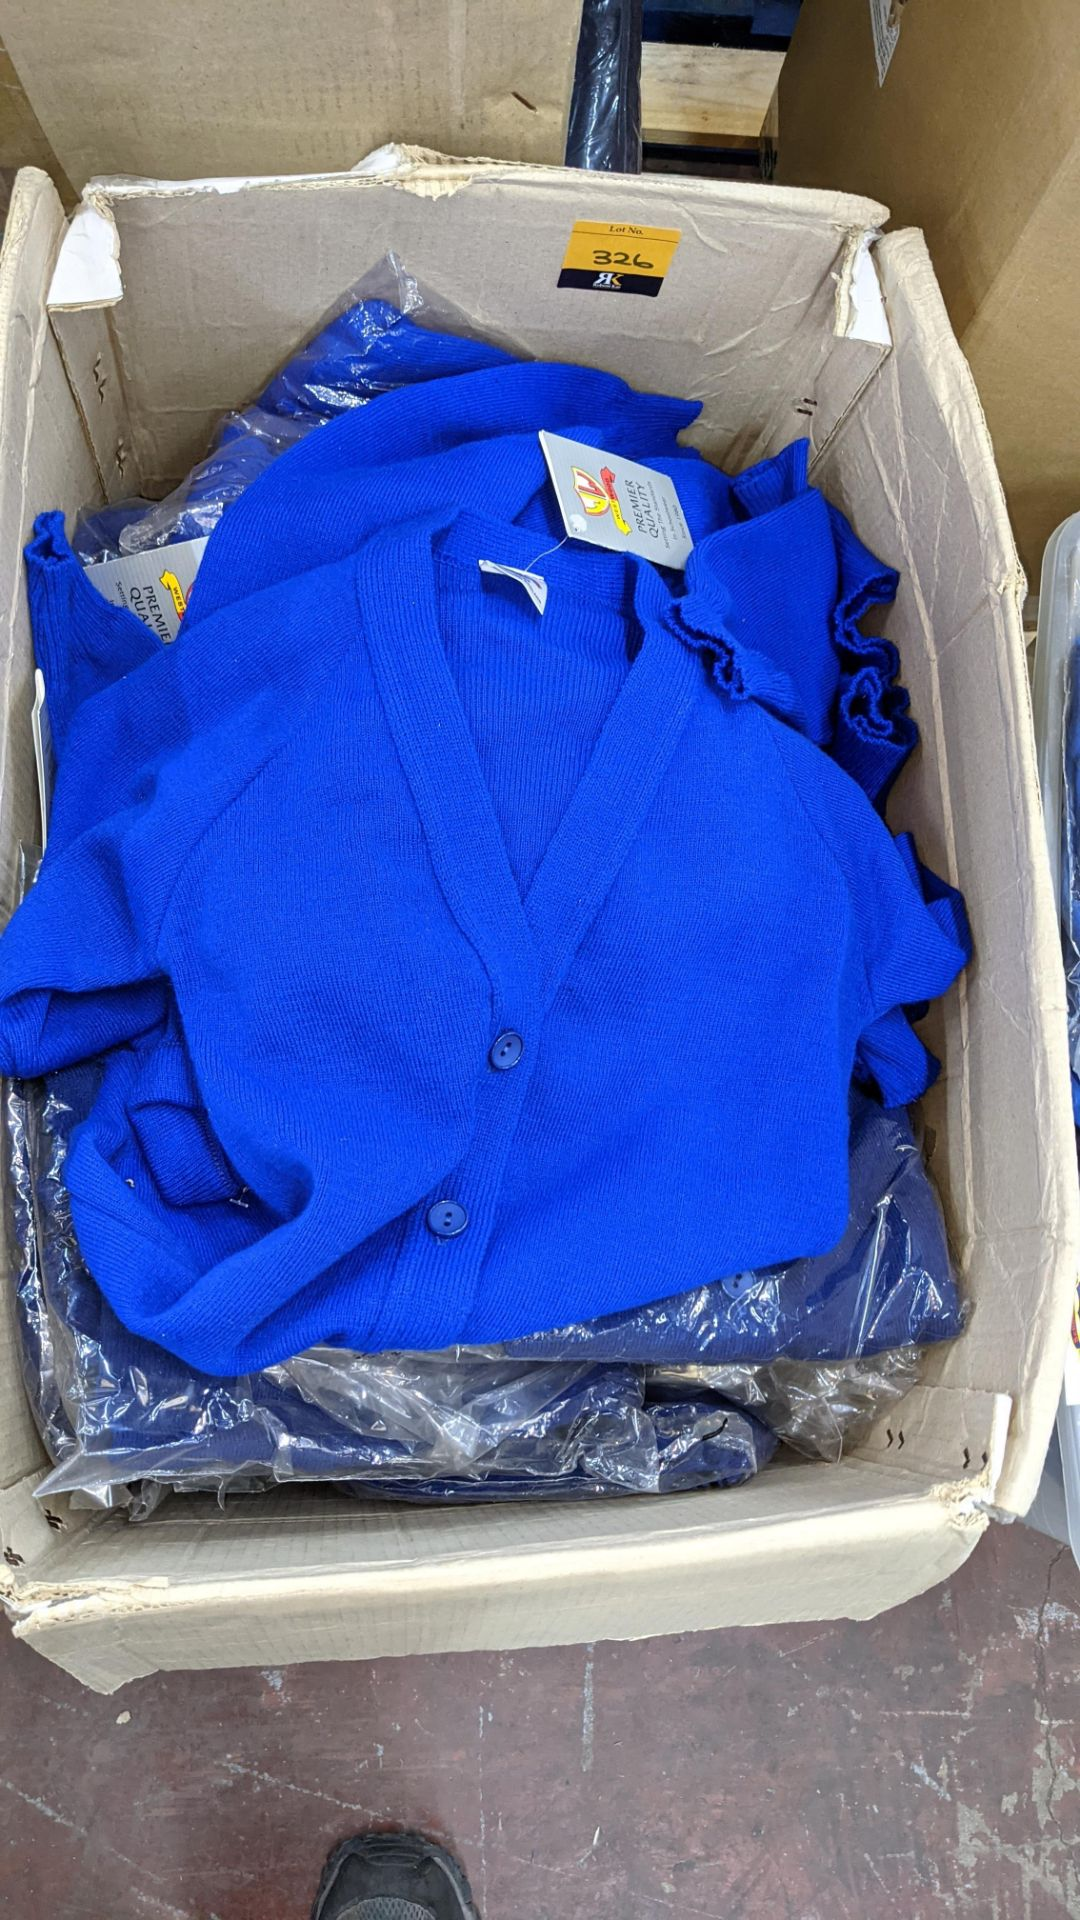 Approx 26 off blue button up children's tops - the contents of 1 large box - Image 2 of 3